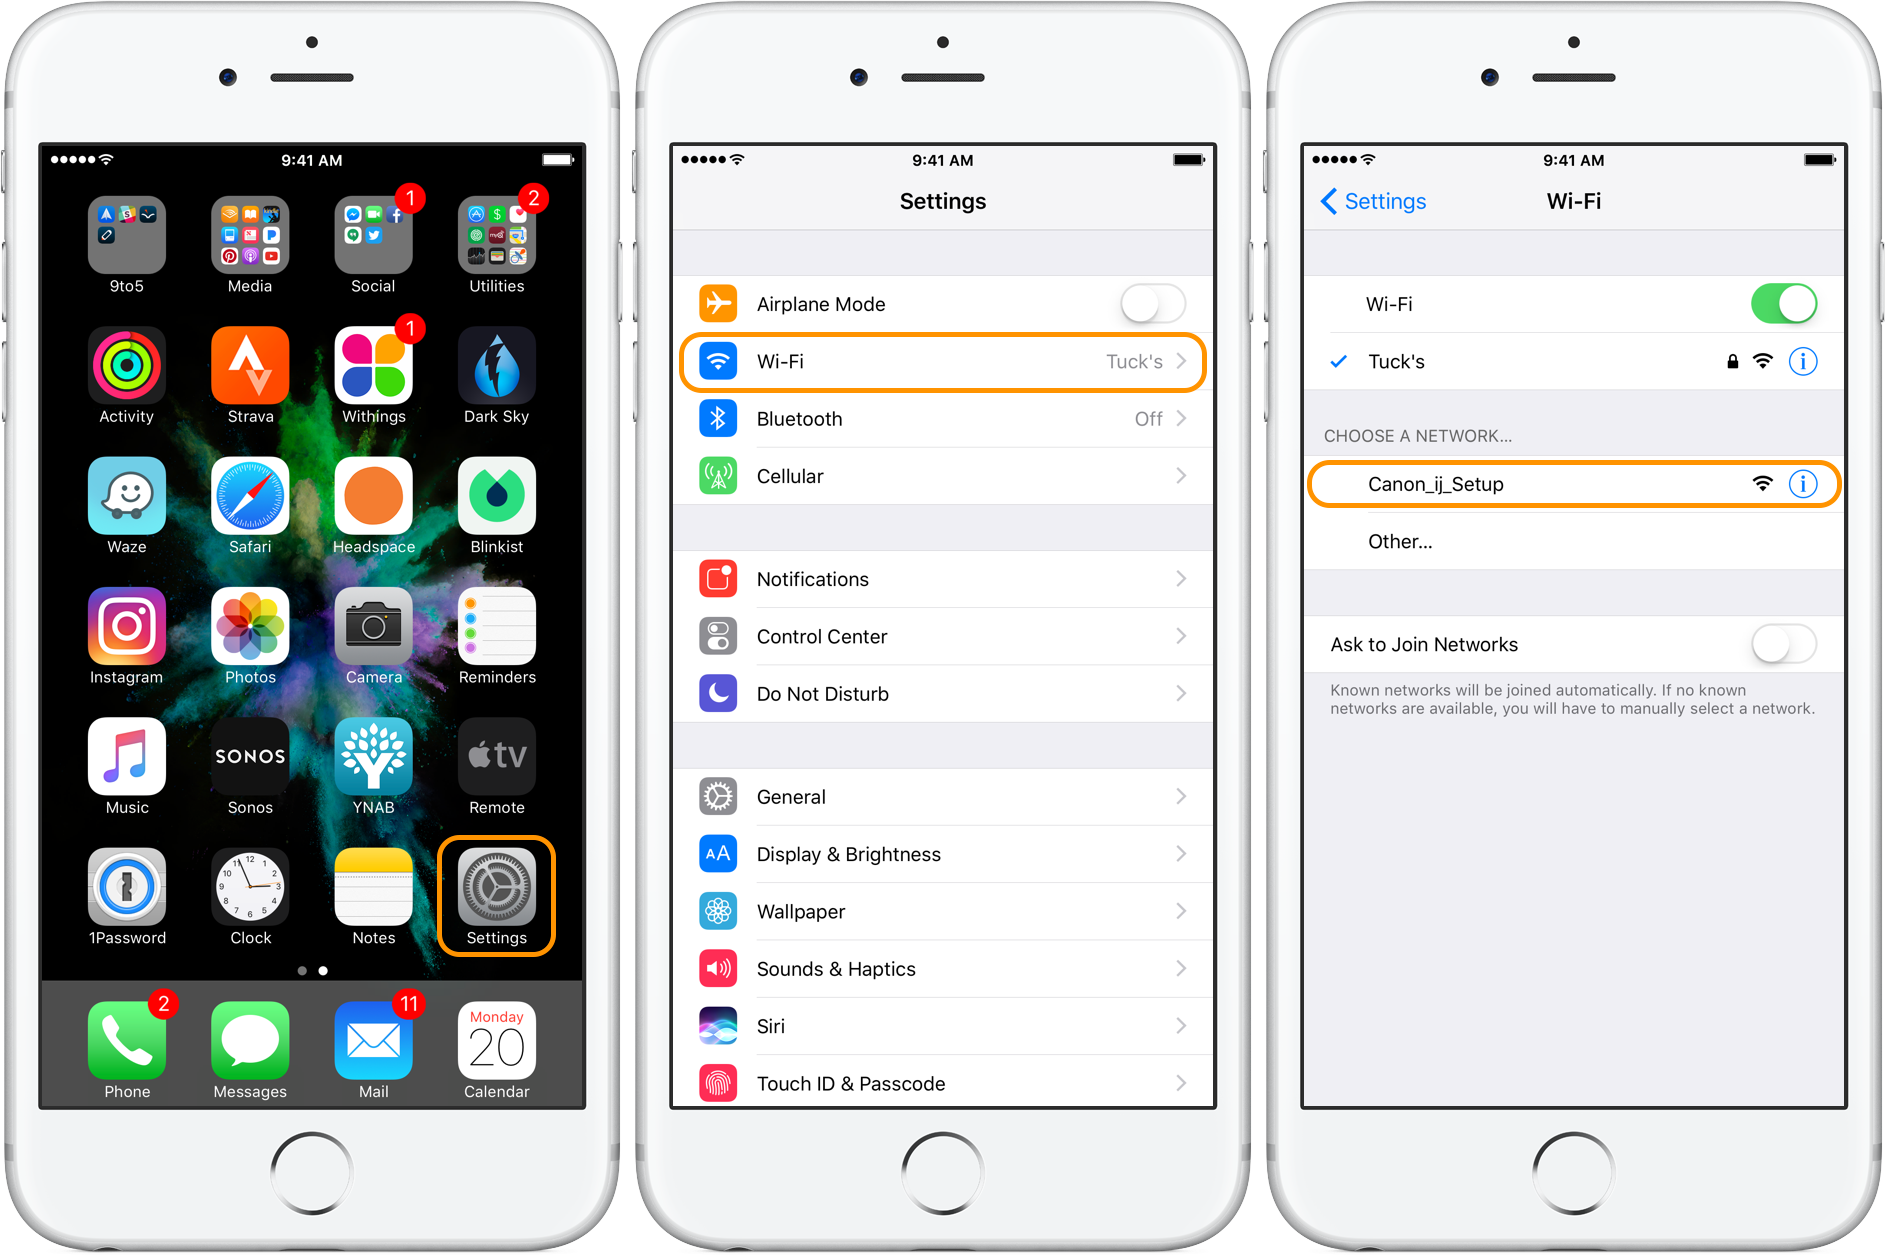 How to setup wifi direct on iphone 6